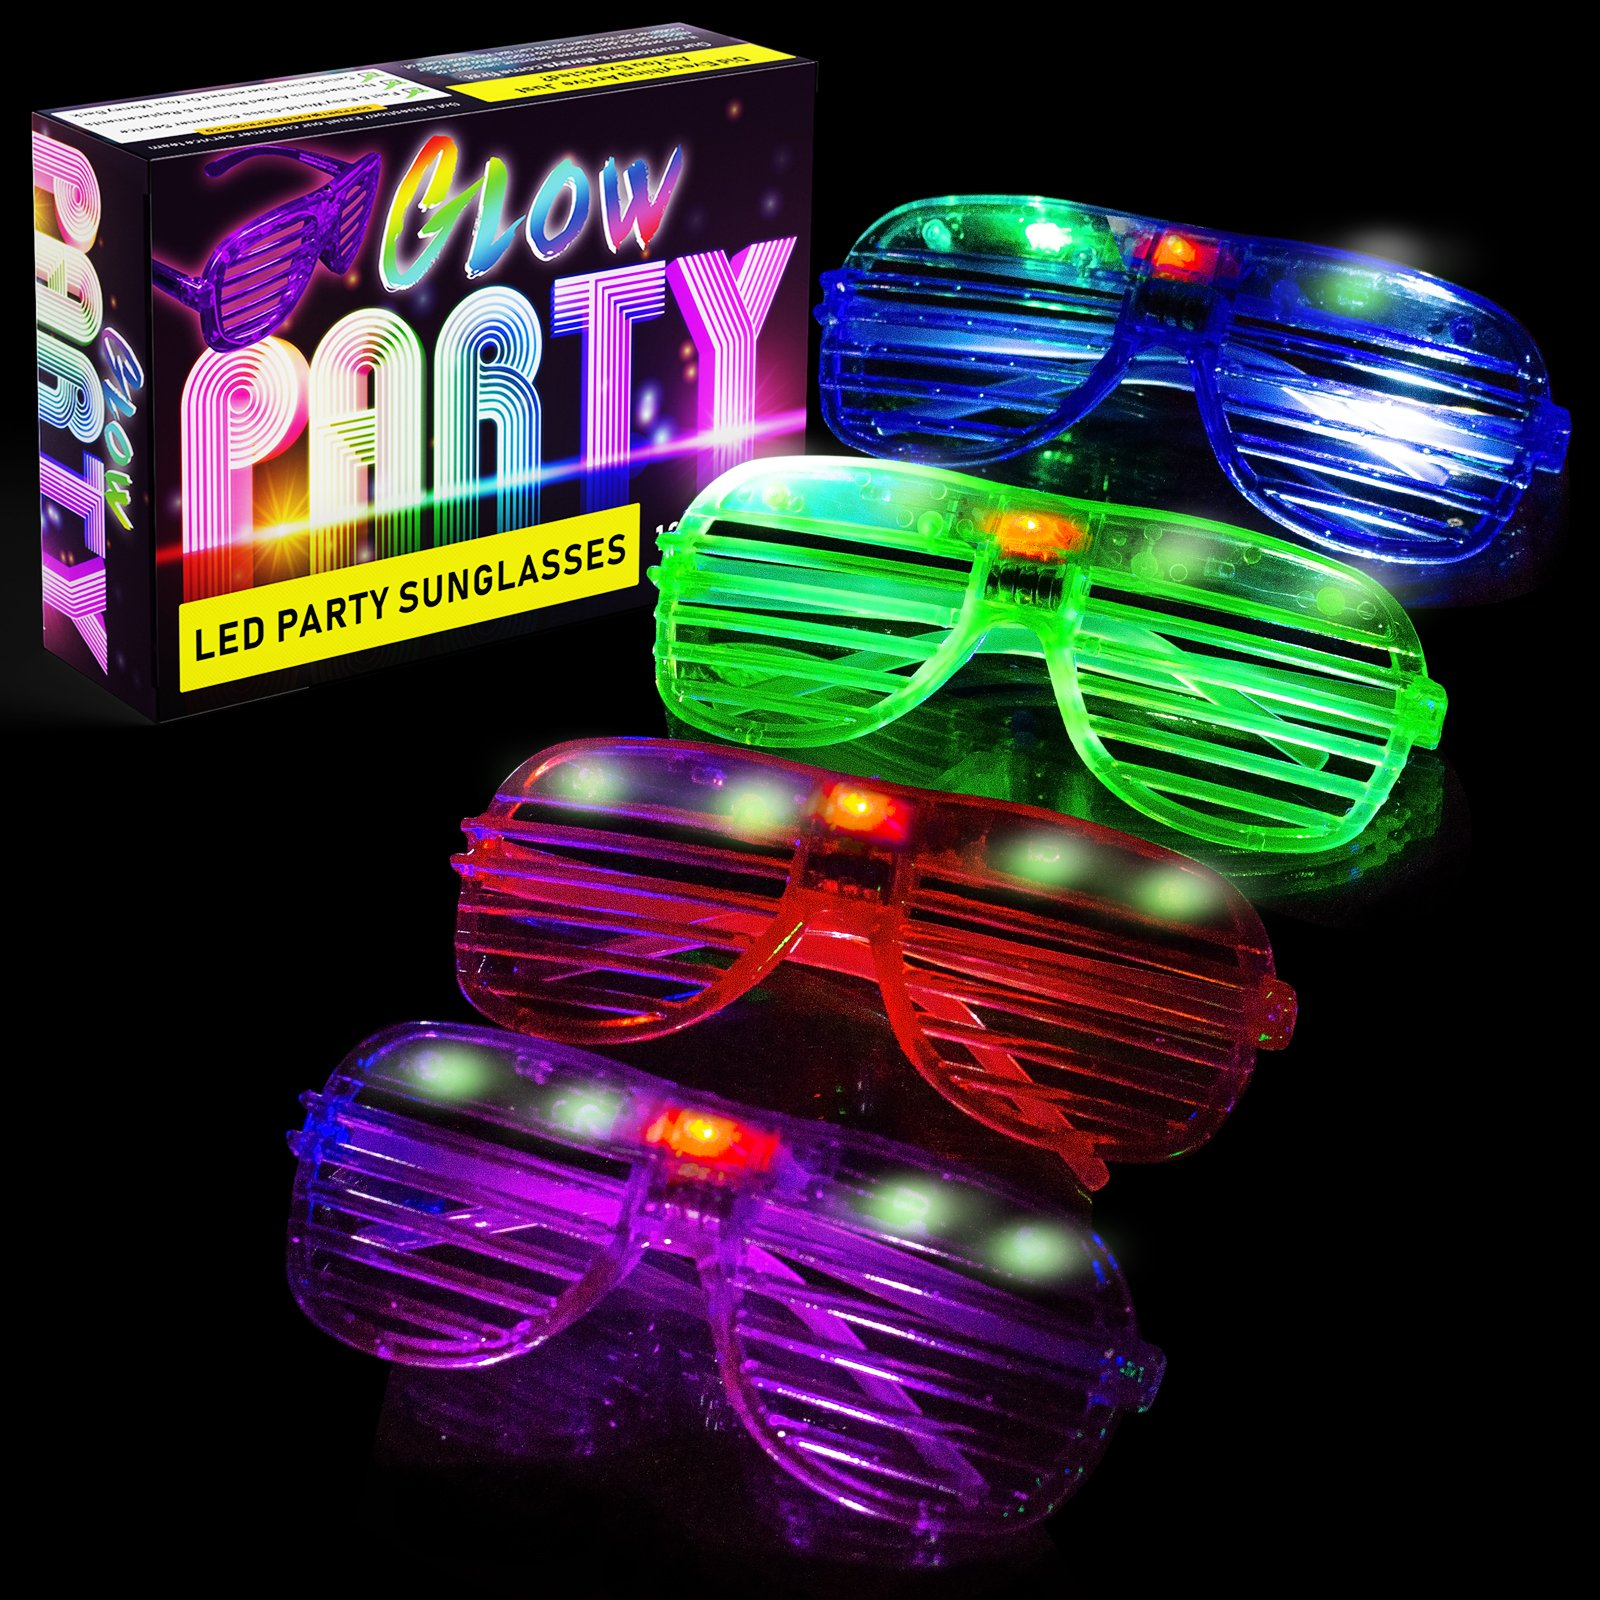 A3 DIRECT LED Glasses & Kids Party Favors - 12 Neon Glow in The Dark Parties Supplies for Goody Bags and Teen Birthdays - Bulk Light Up Shutter Shades Fun for All Ages and Glowing Events!